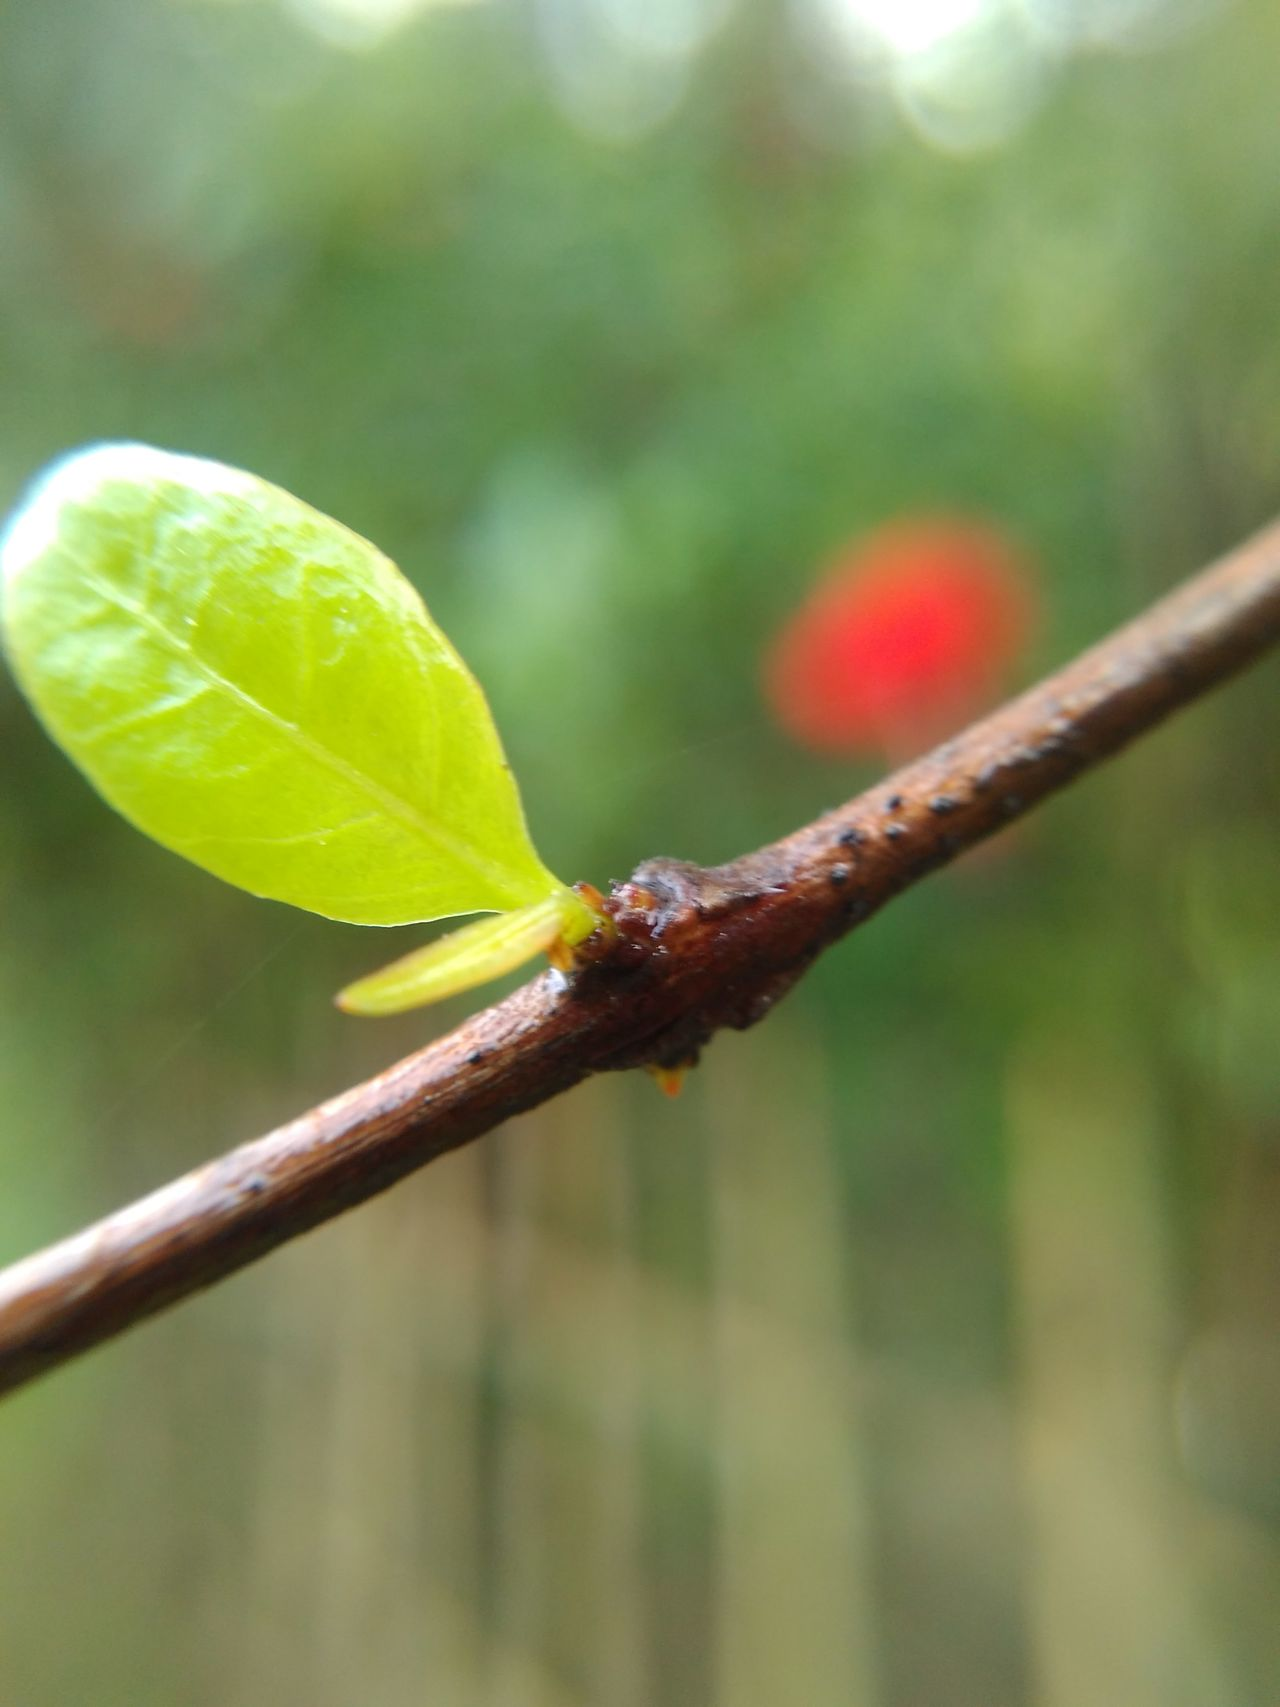 Leaf focused Close-up Nature Growth Plant Macro Beauty In Nature Drop No People Water Outdoors Day Fragility Freshness